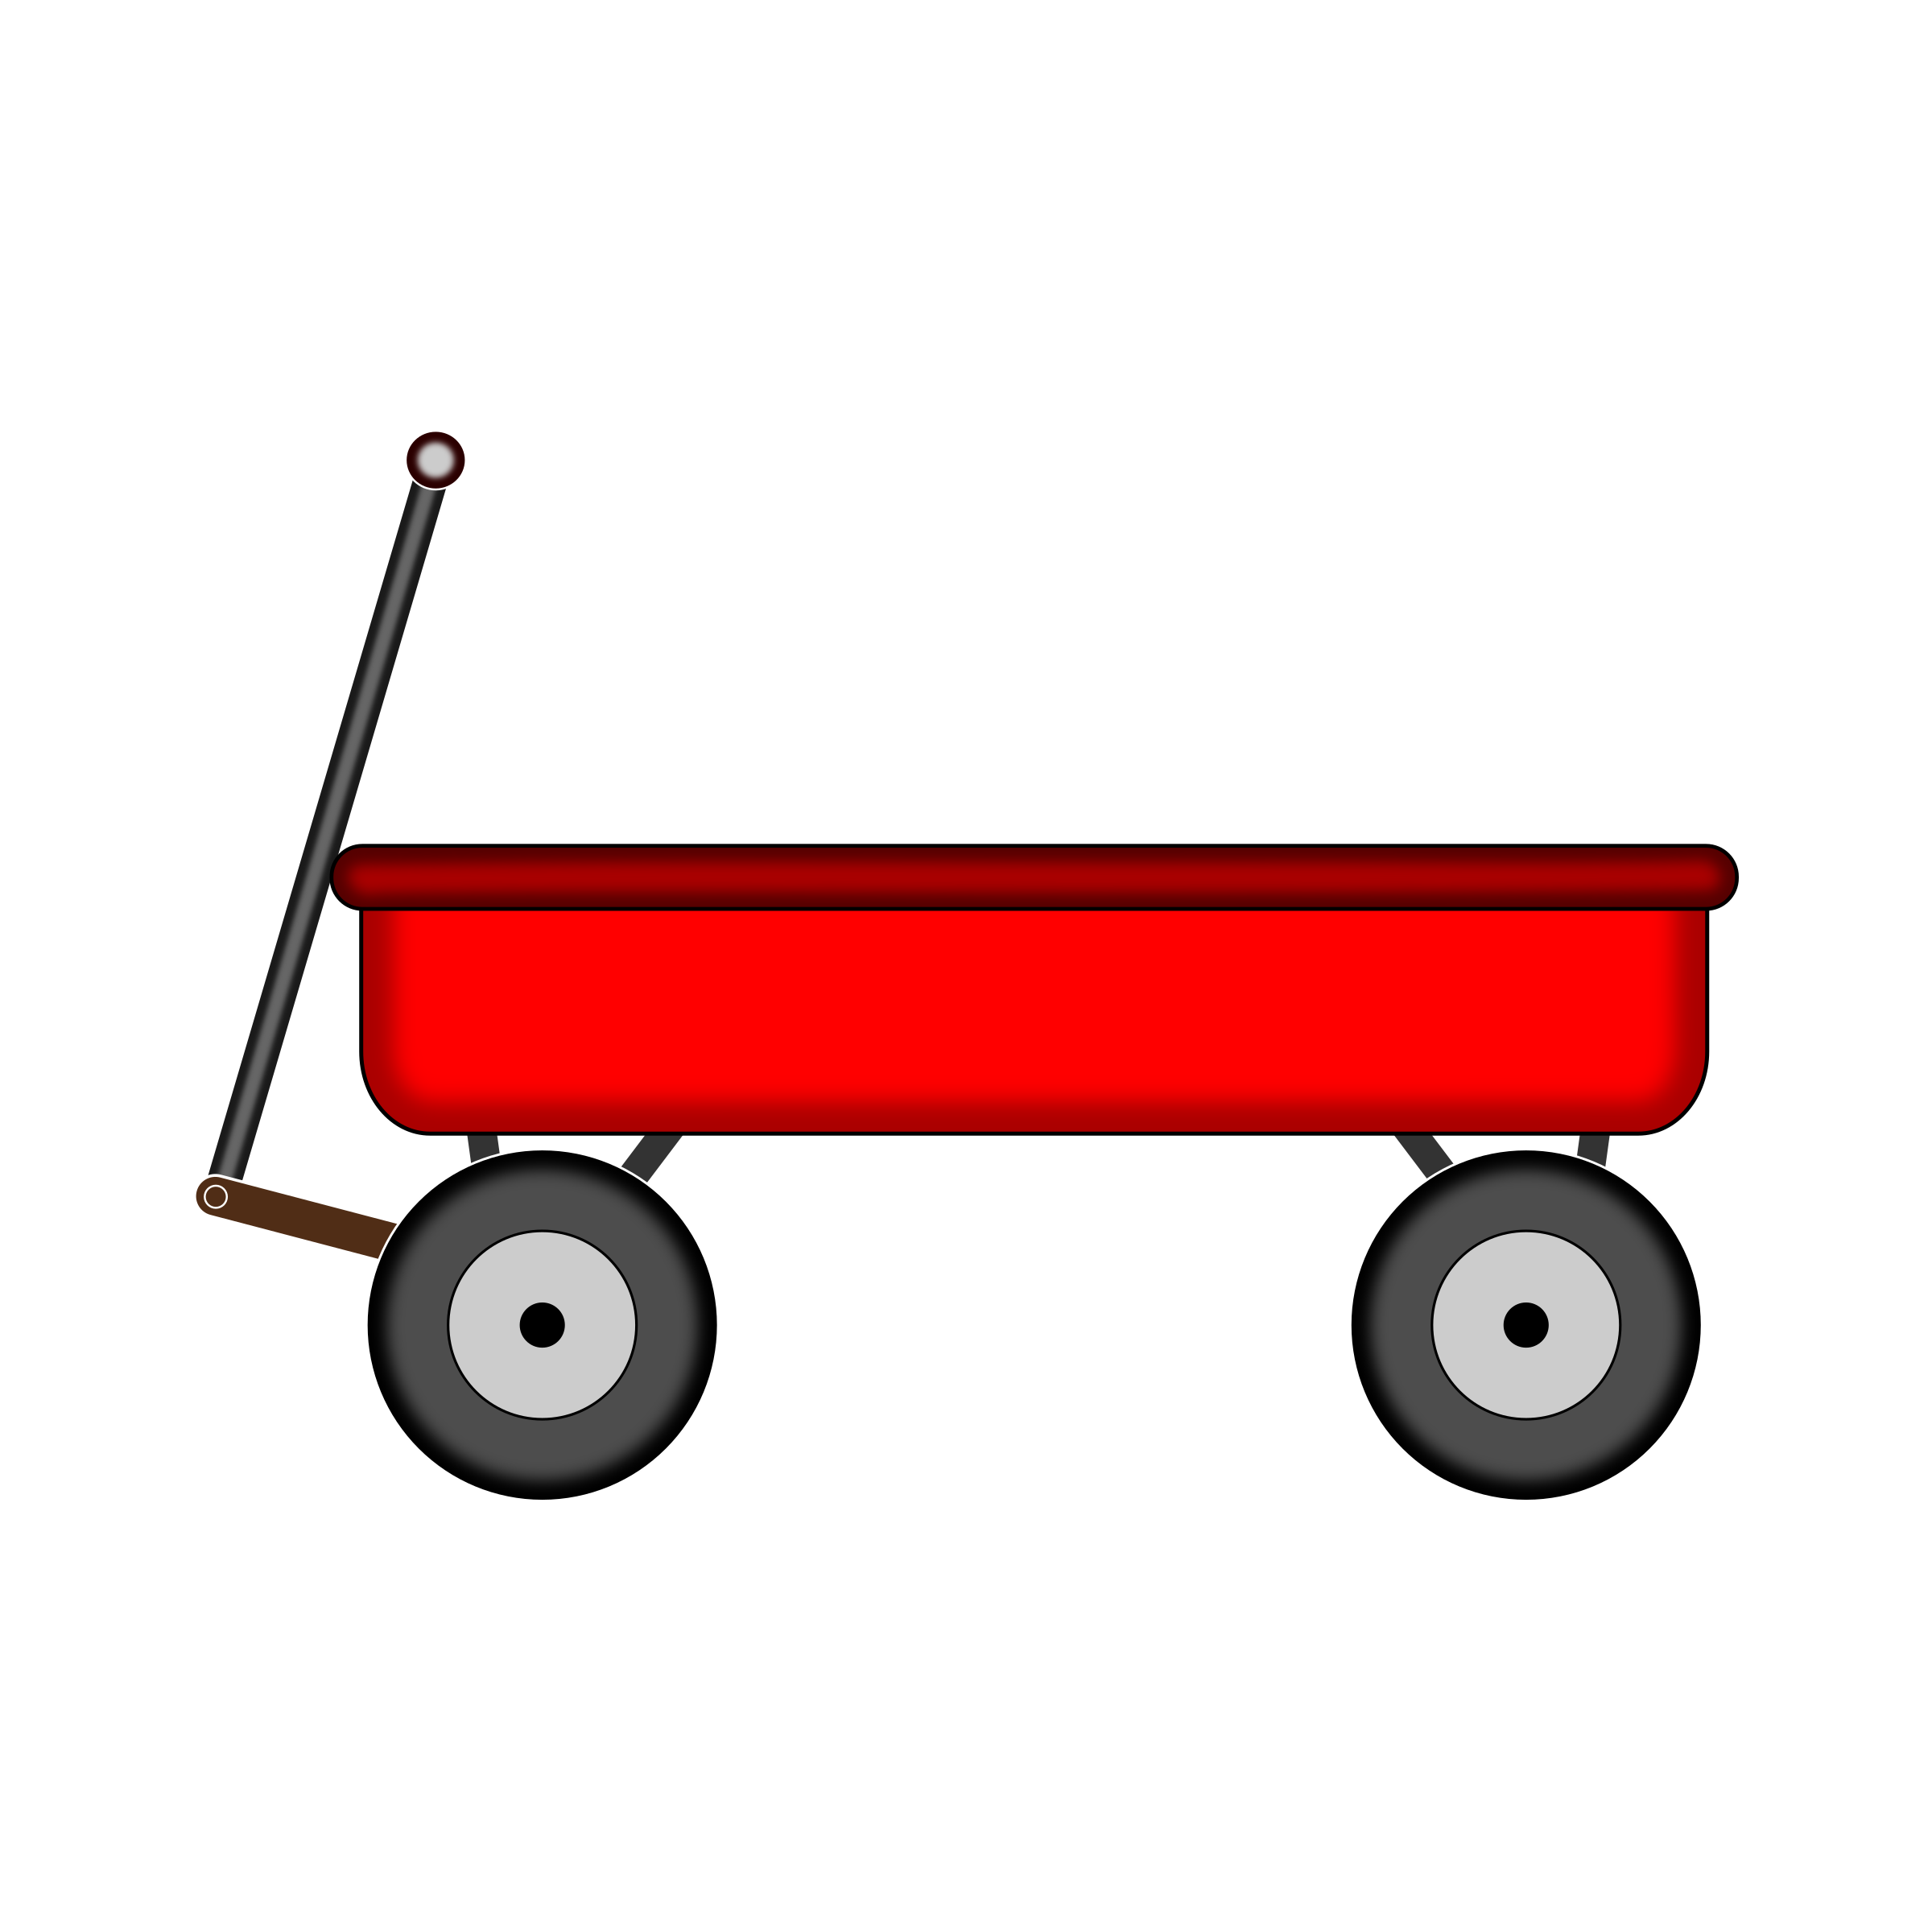 clipart free stock Wagon clipart. Transparent free on dumielauxepices